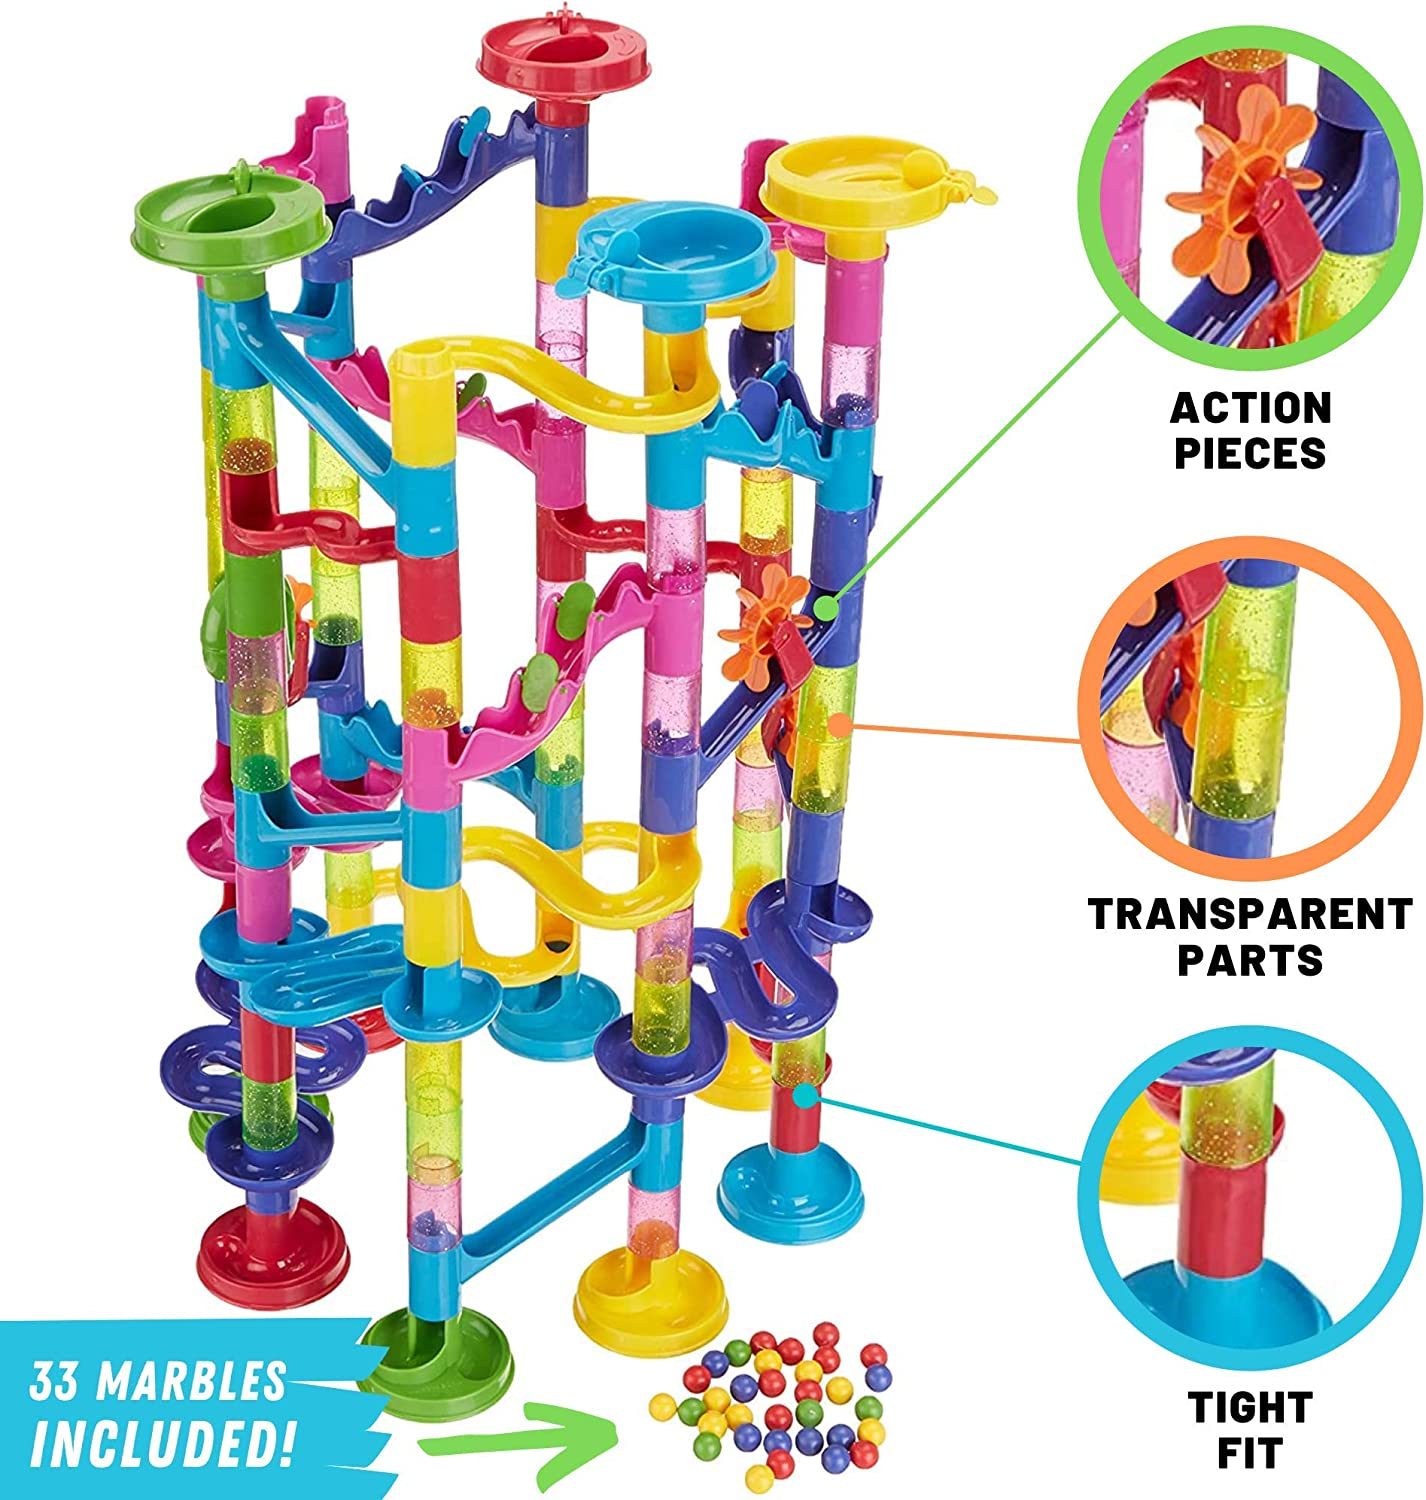 STEM Building Puzzle Blocks Educational Construction Toys Marble Maze for Toddler Giant Marble Race Railway Track Game WenToyce 120 Pcs Marble Run Sets for Kids